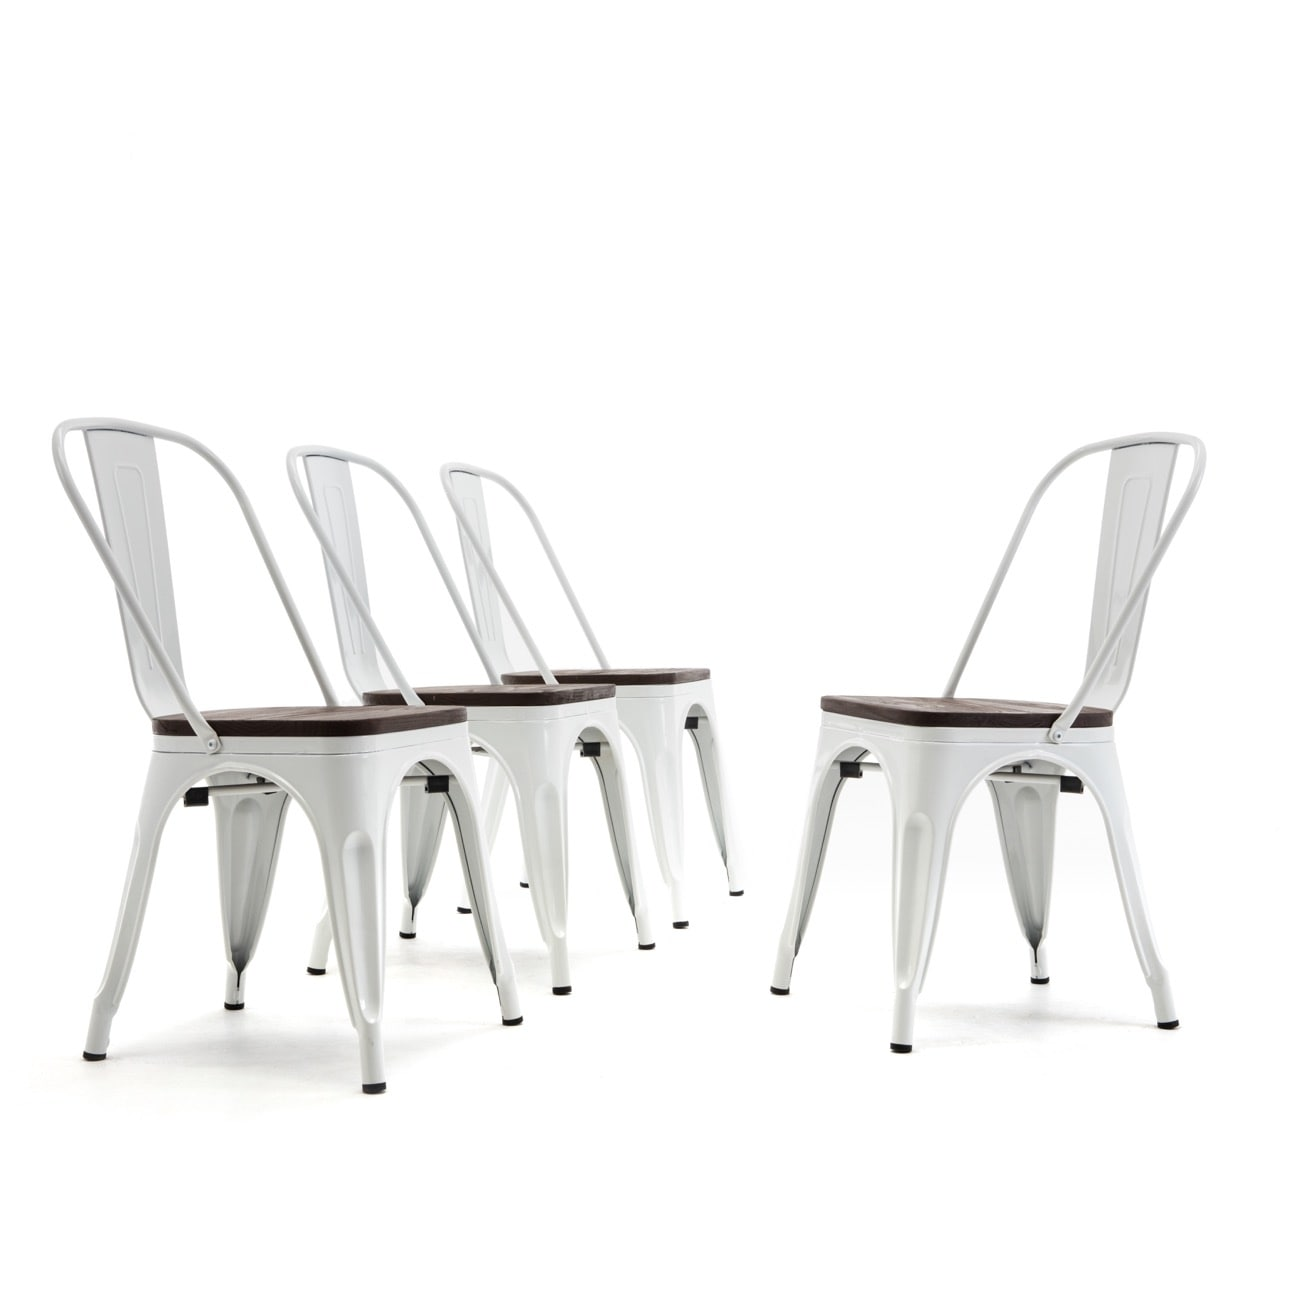 Belleze Set Of 4 Metal Chair W Wood Seat Modern Industrial Stackable Bistro Dining Chairs White